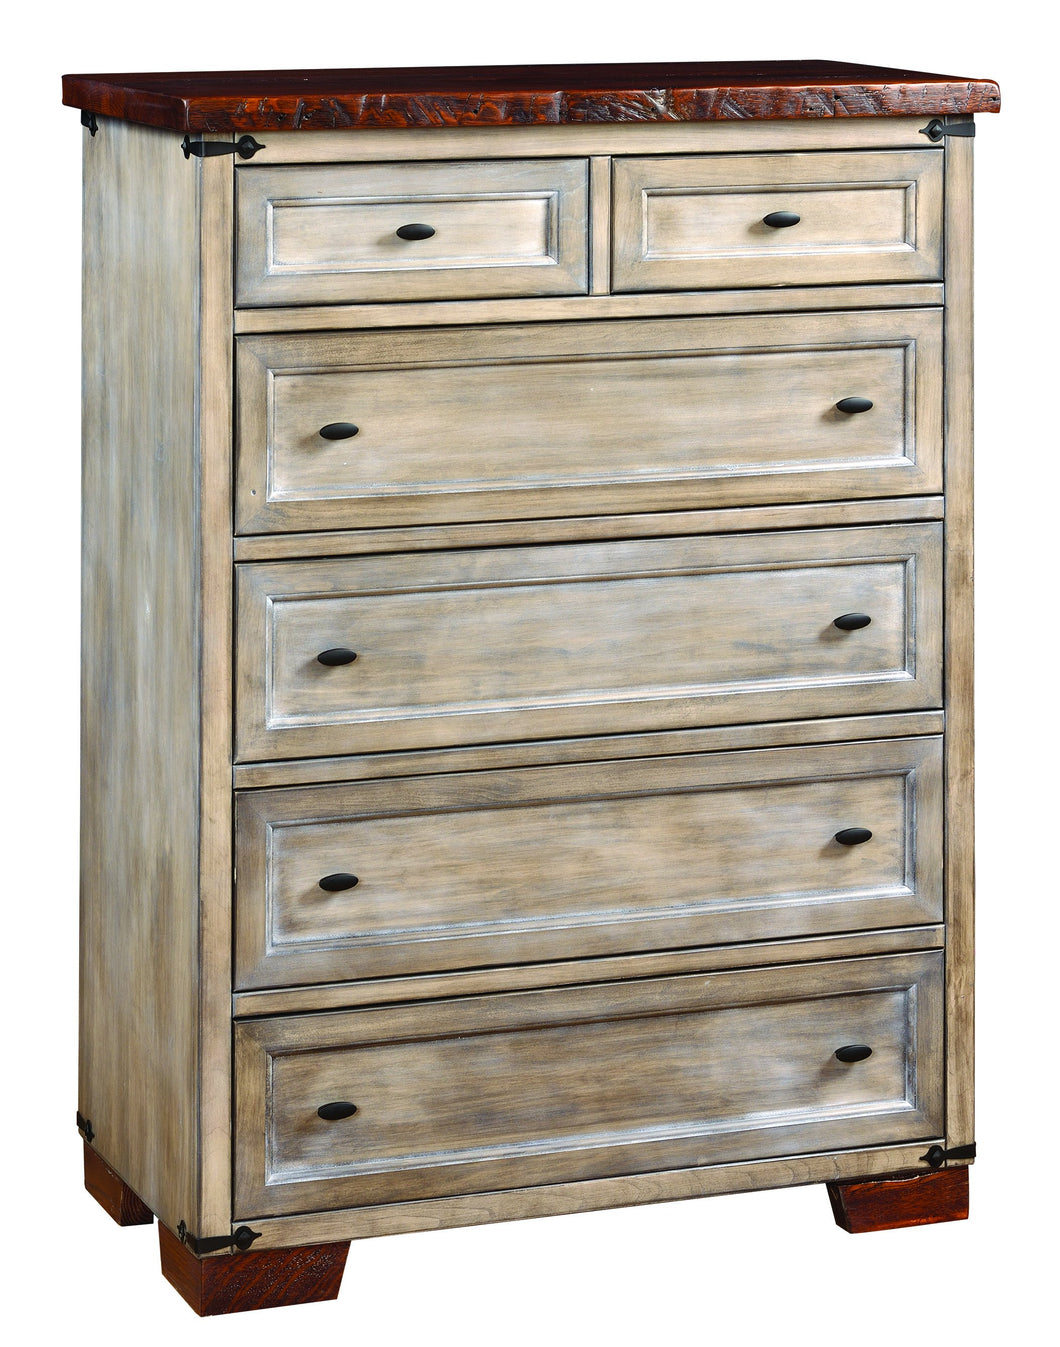 Farmhouse Chest of Drawers